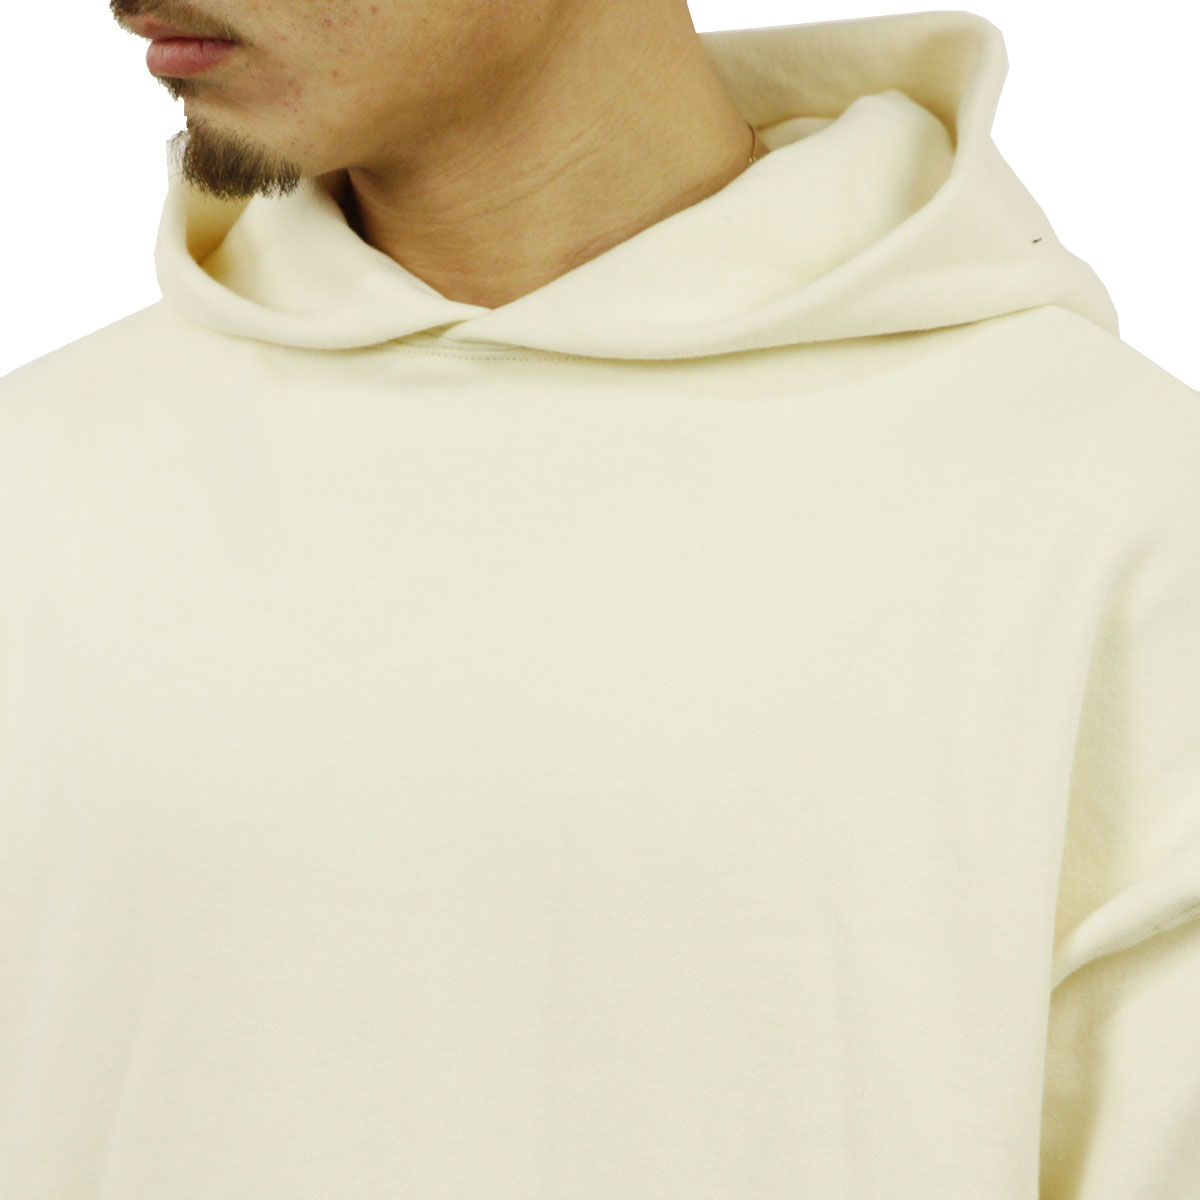 フィアオブゴッド パーカー メンズ 正規品 FEAR OF GOD プルオーバーパーカー  FOG - FEAR OF GOD ESSENTIALS GRAPHIC PULLOVER CREAM AA5B B1C C1D D5E E18F